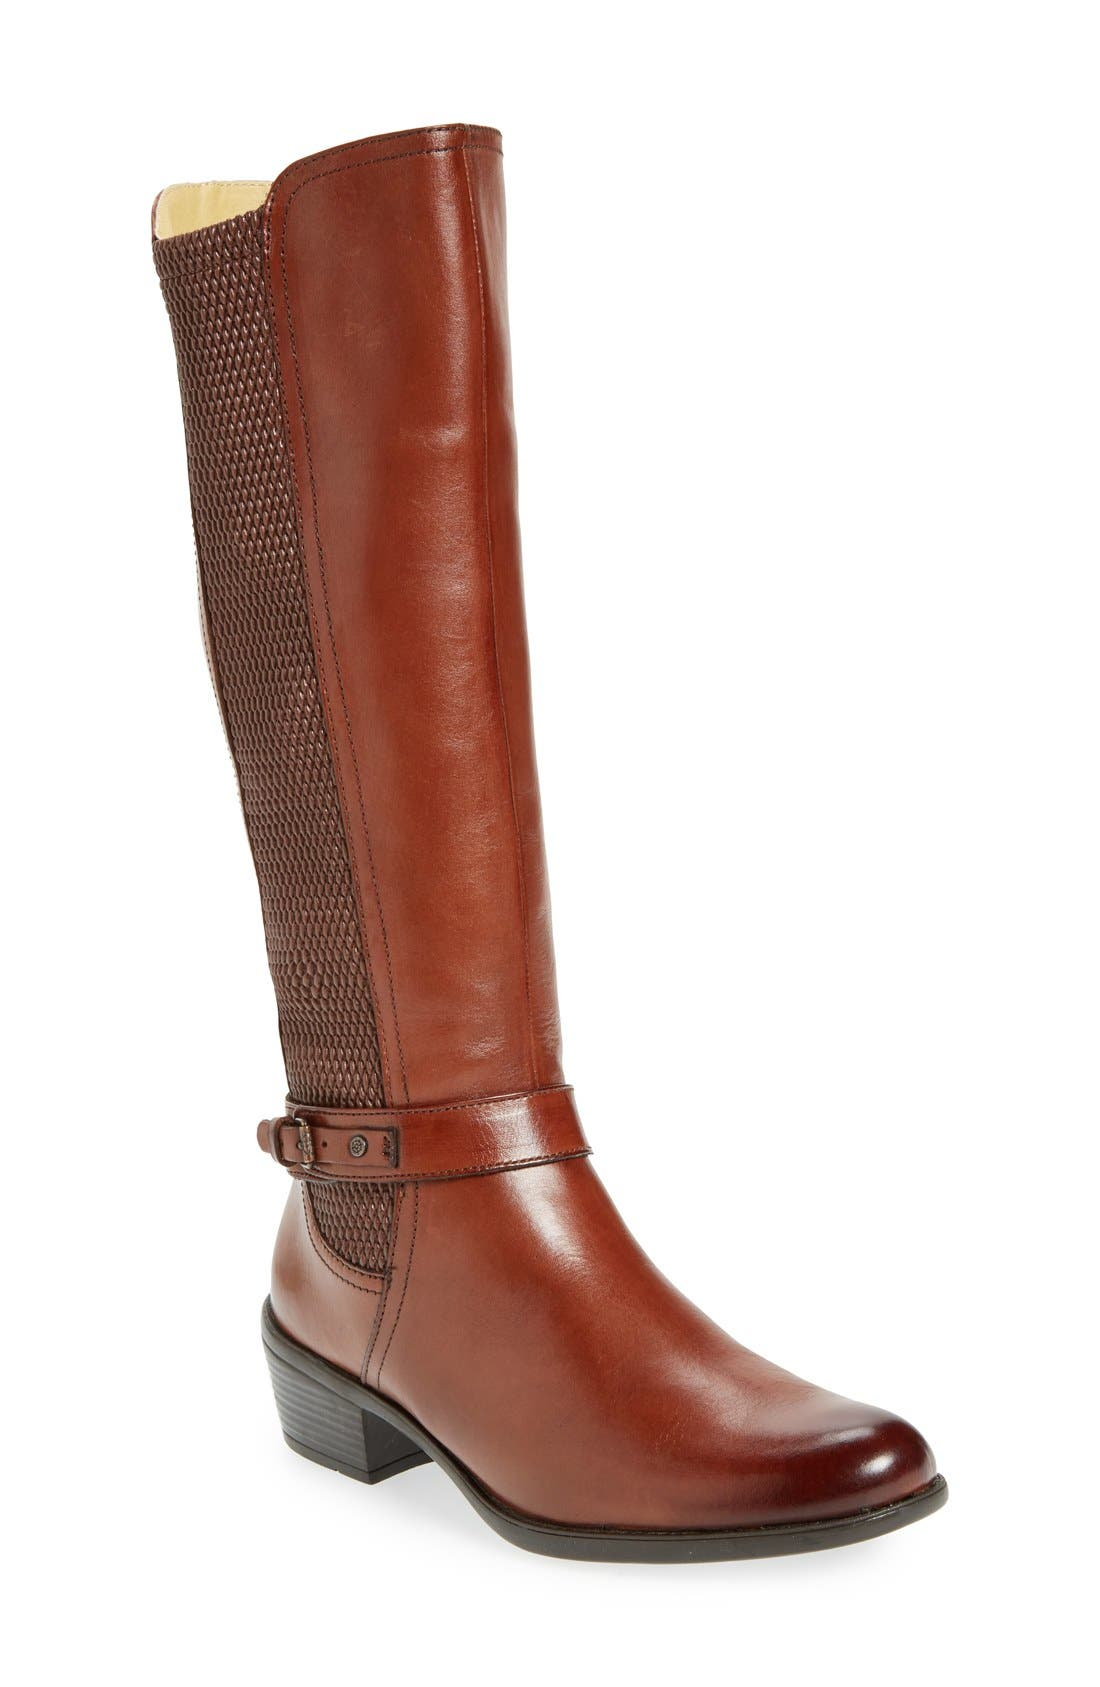 Main Image - Bussola 'Arad' Riding Boot (Women)